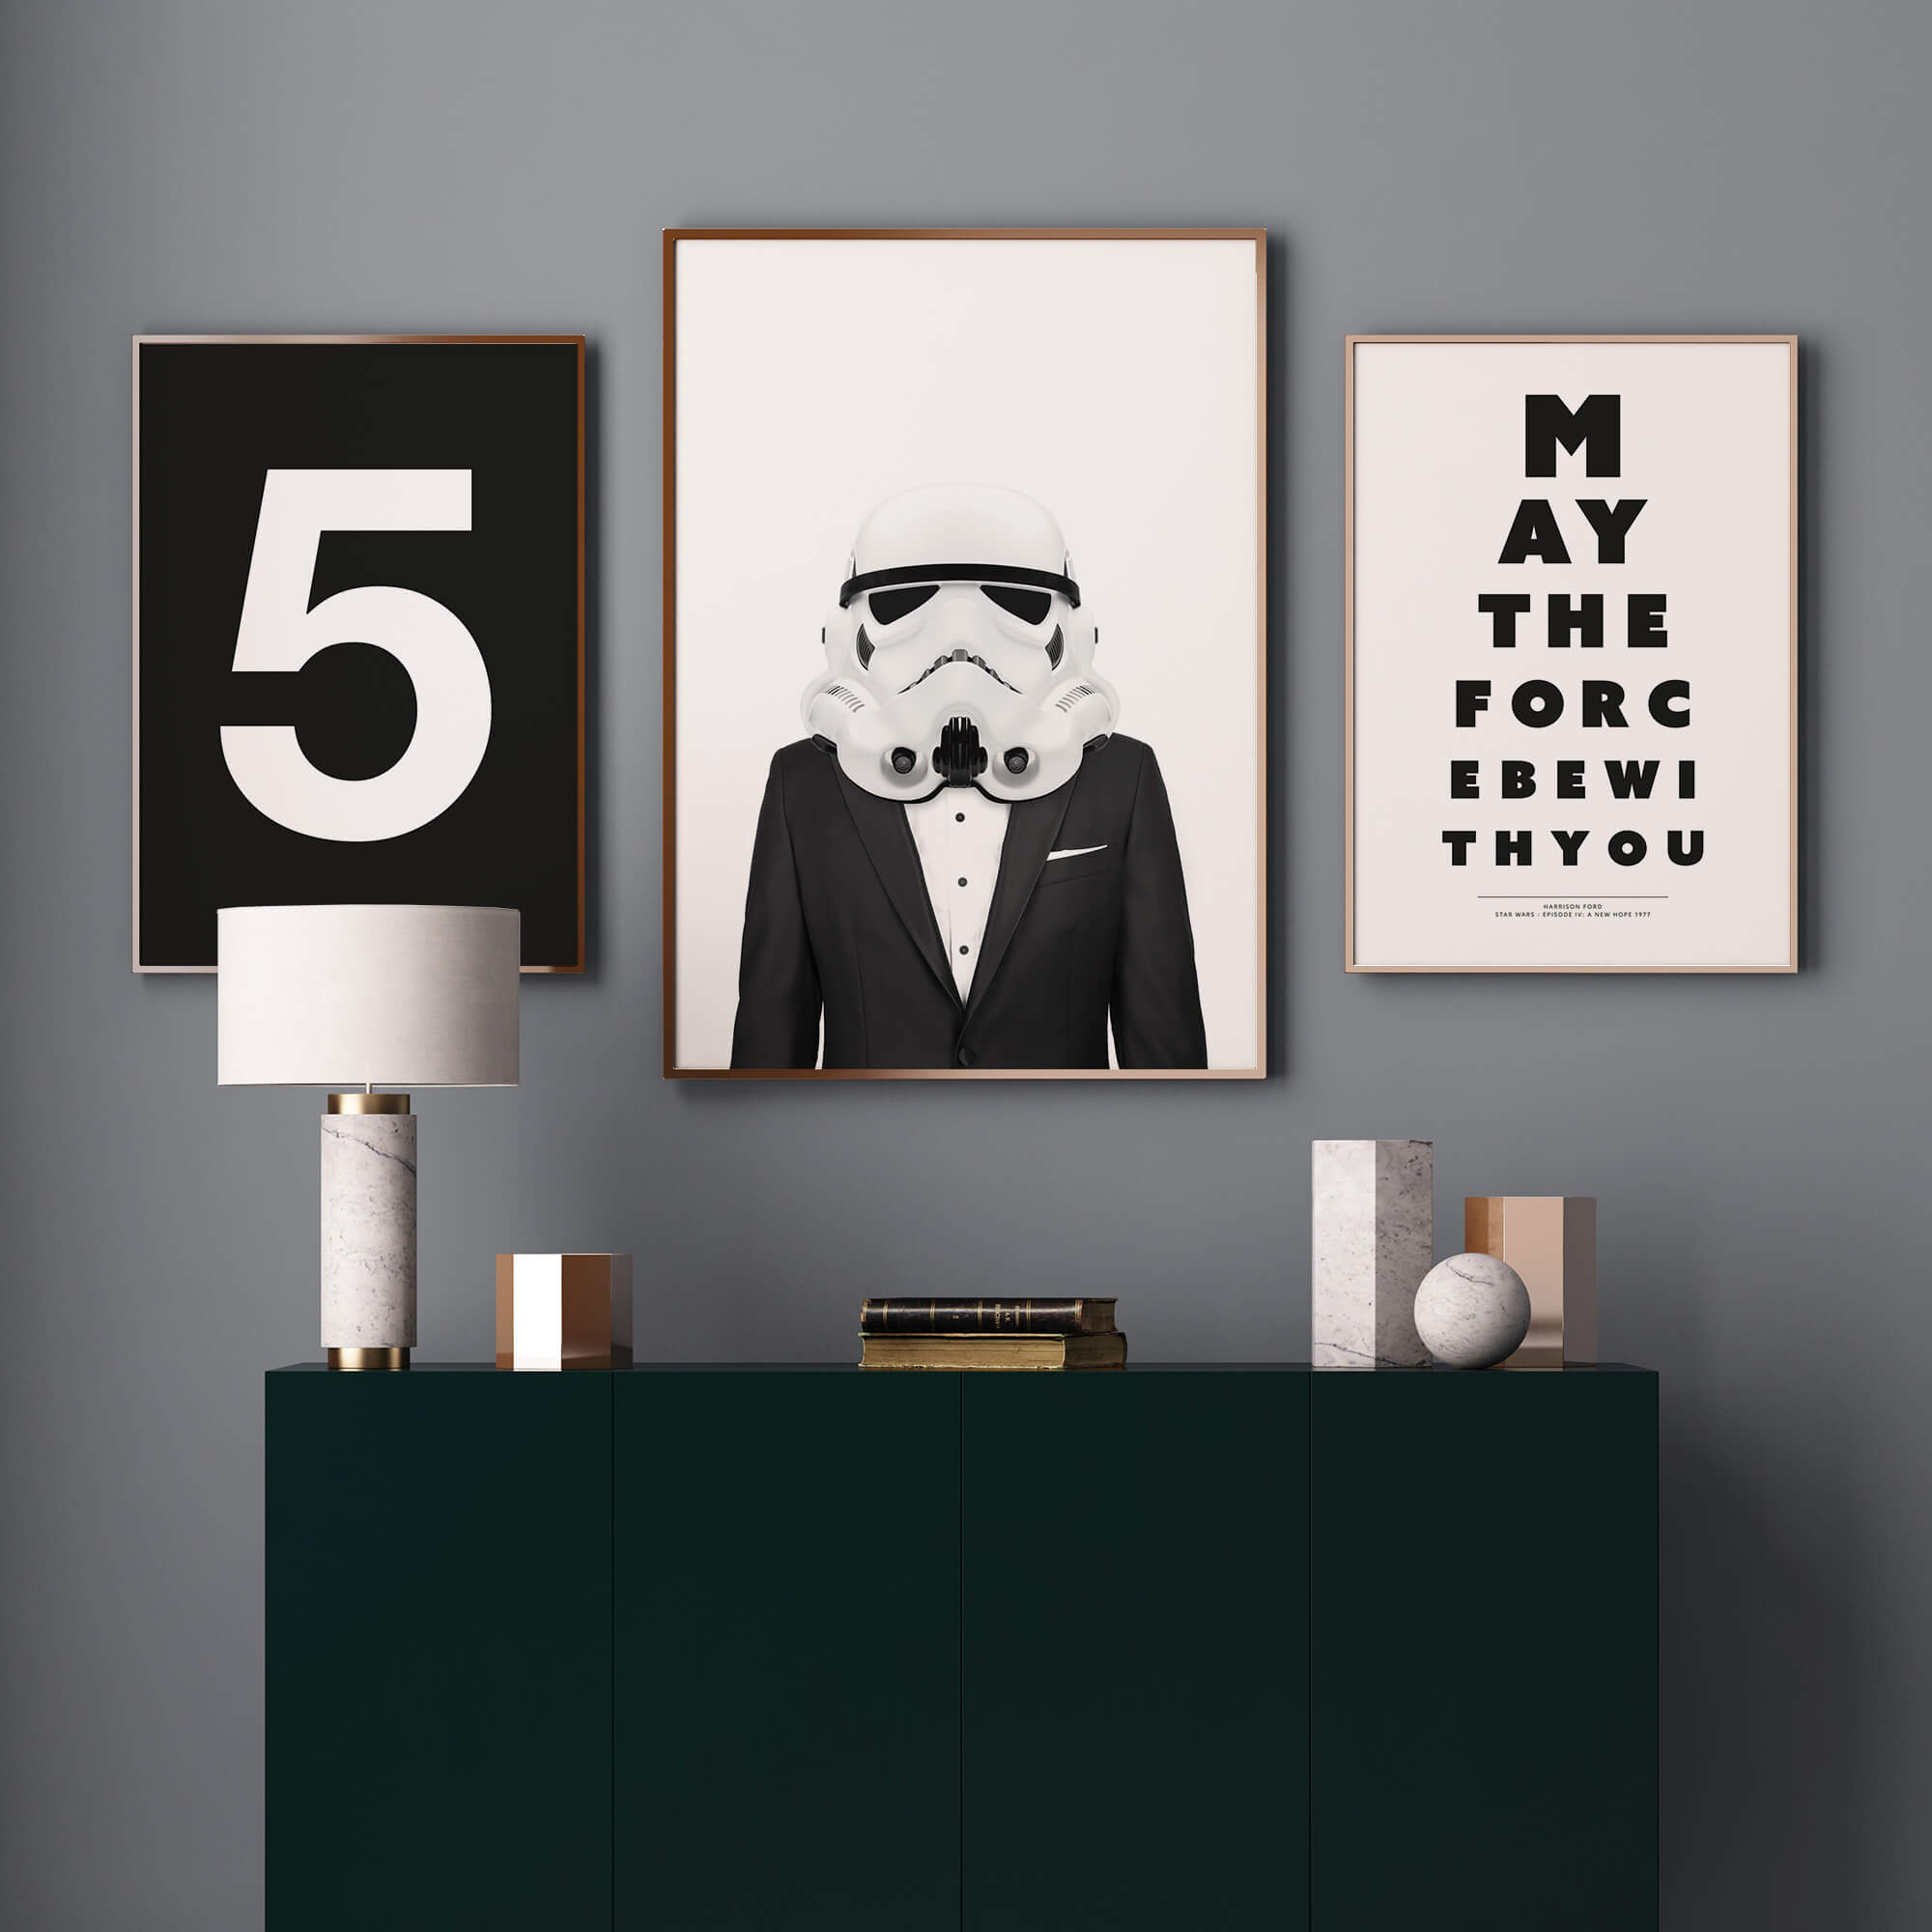 Classy Stormtrooper poster